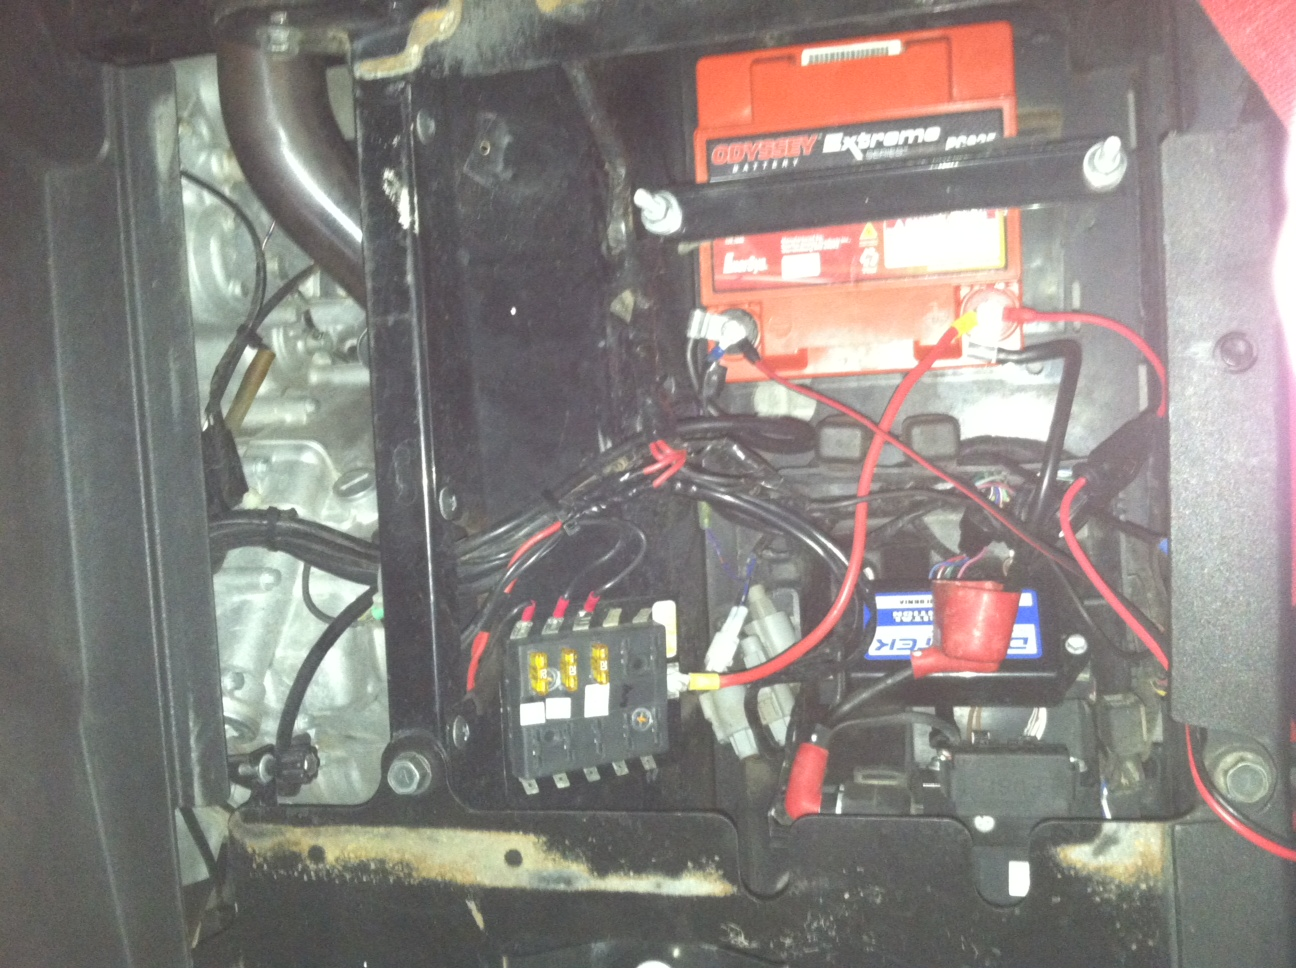 Summer Project Dual Battery Setup And Fuse Block Kawasaki Teryx Old 60 Amp Box Click Image For Larger Version Name Securedownload Views 1963 Size 4660